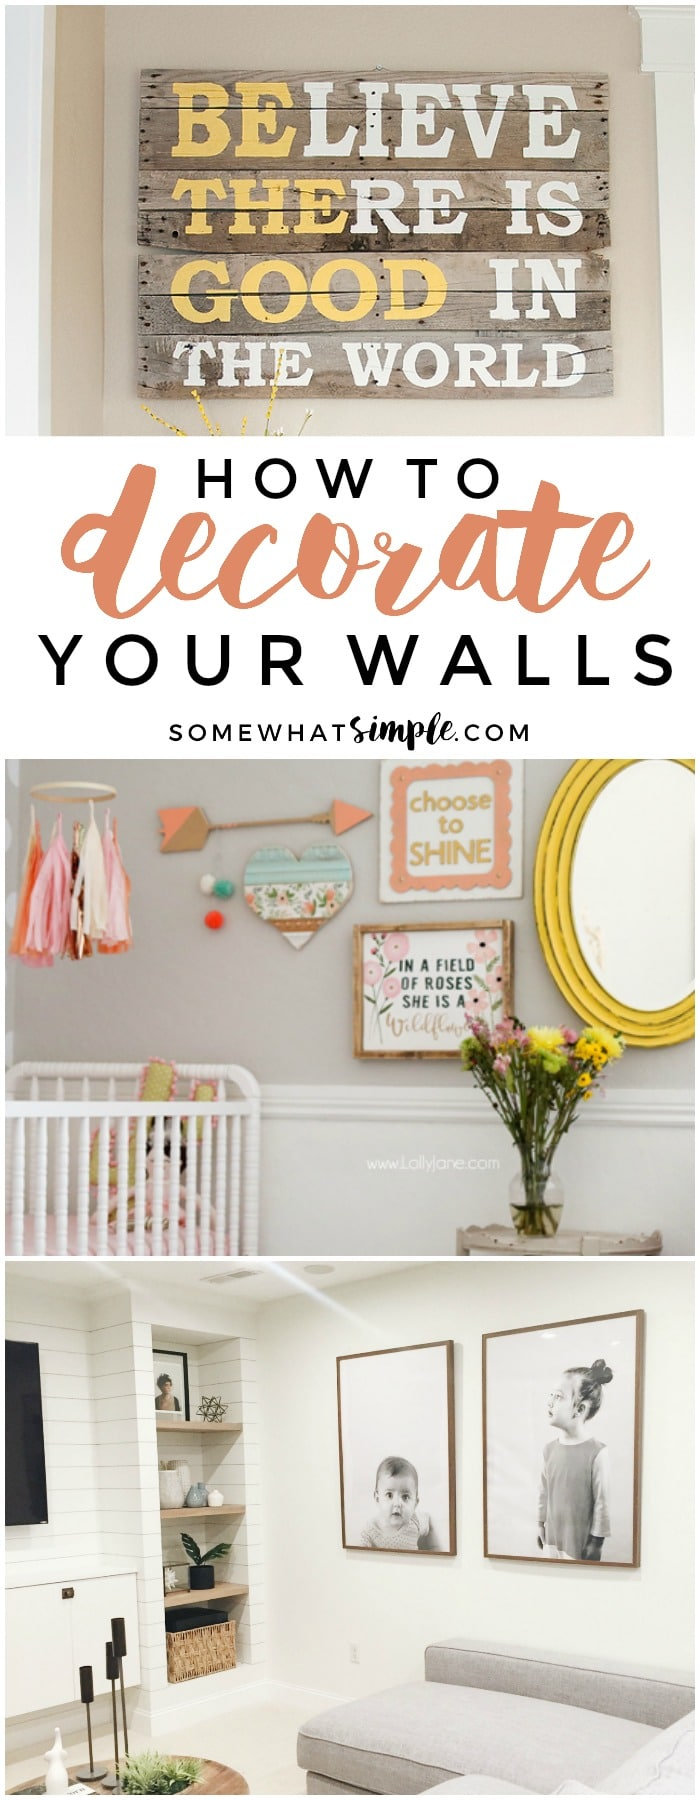 Today Weu0027re Featuring Some Of Our Favorite Wall Decor Ideas To Help Make  Your